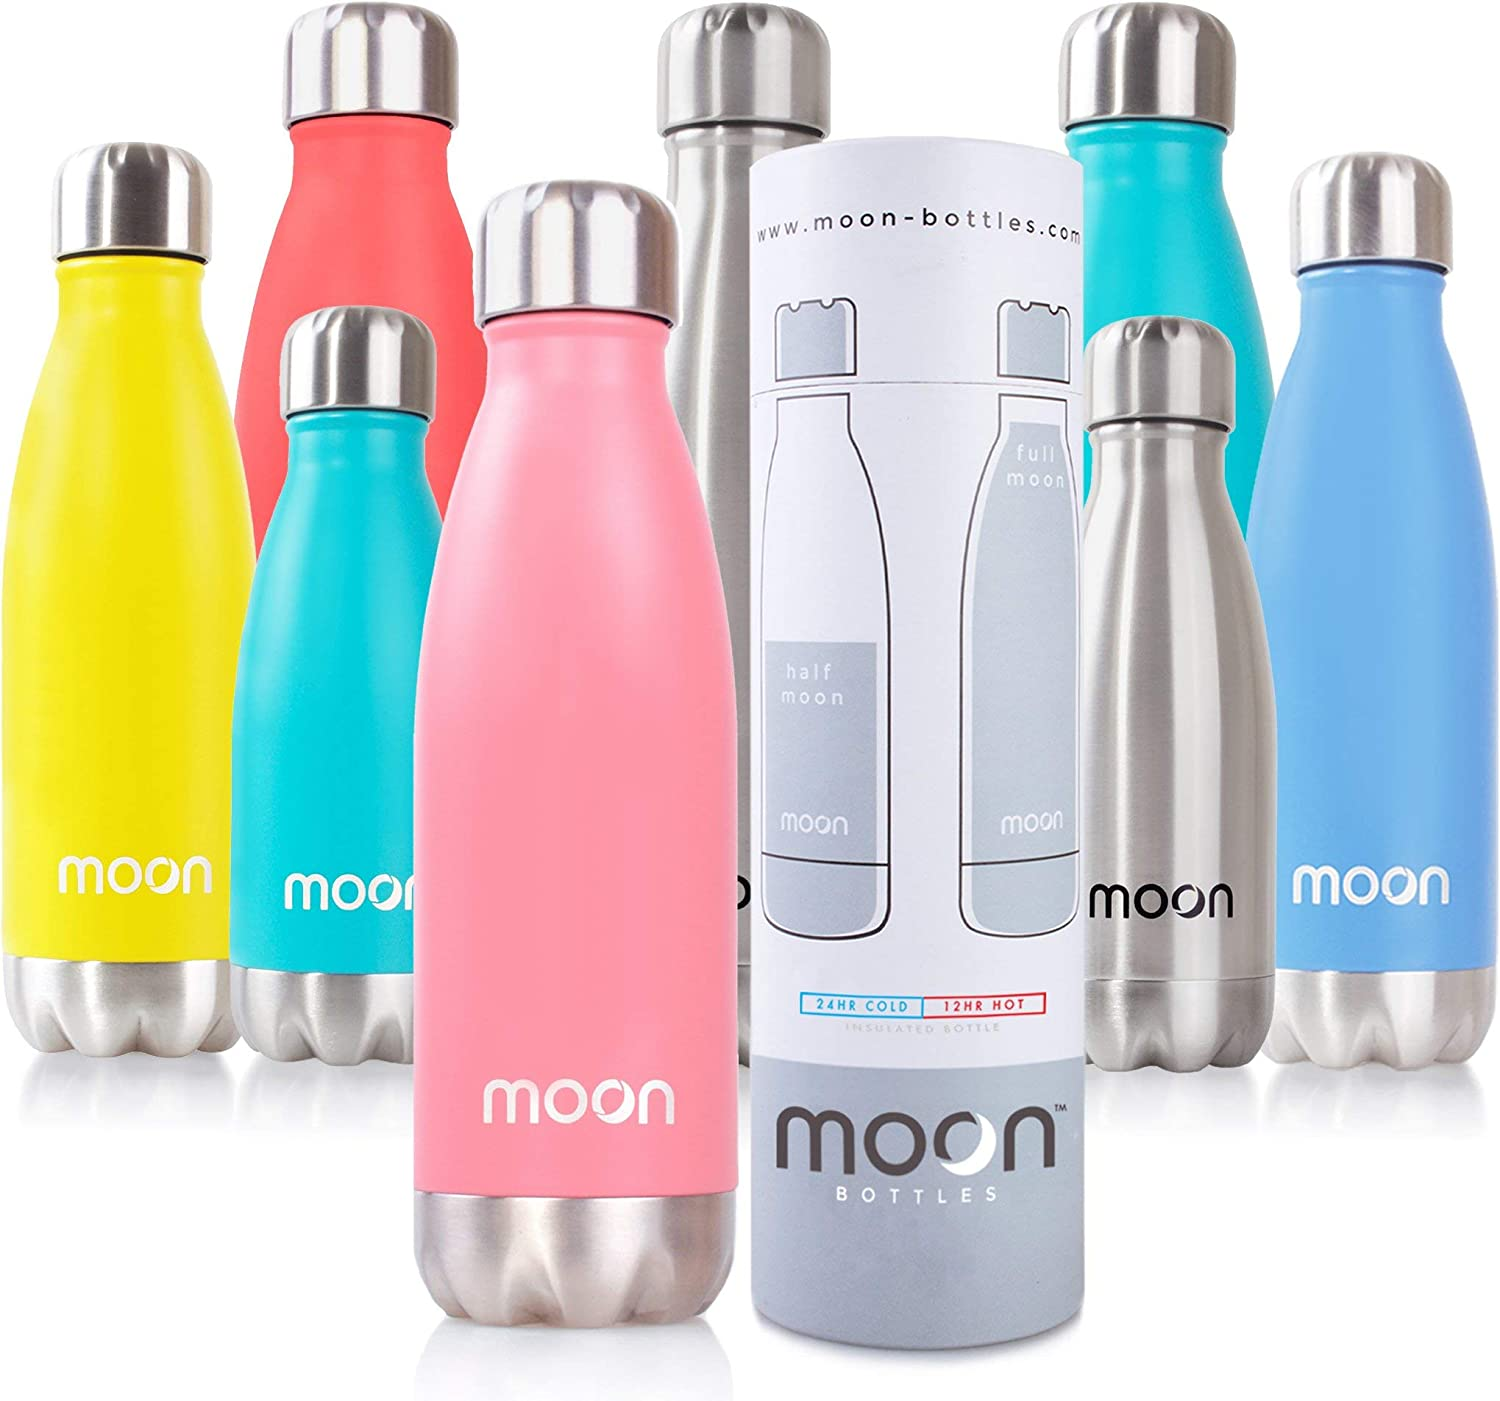 moon botellas - Botella de Agua de Acero Inoxidable, Botella Termica sin BPA - 12 Horas Caliente, 24 Horas Frías - 260ml, 500ml, 750ml – Doble Pared, Reutilizable, Respetuoso con el Medio Ambiente, a